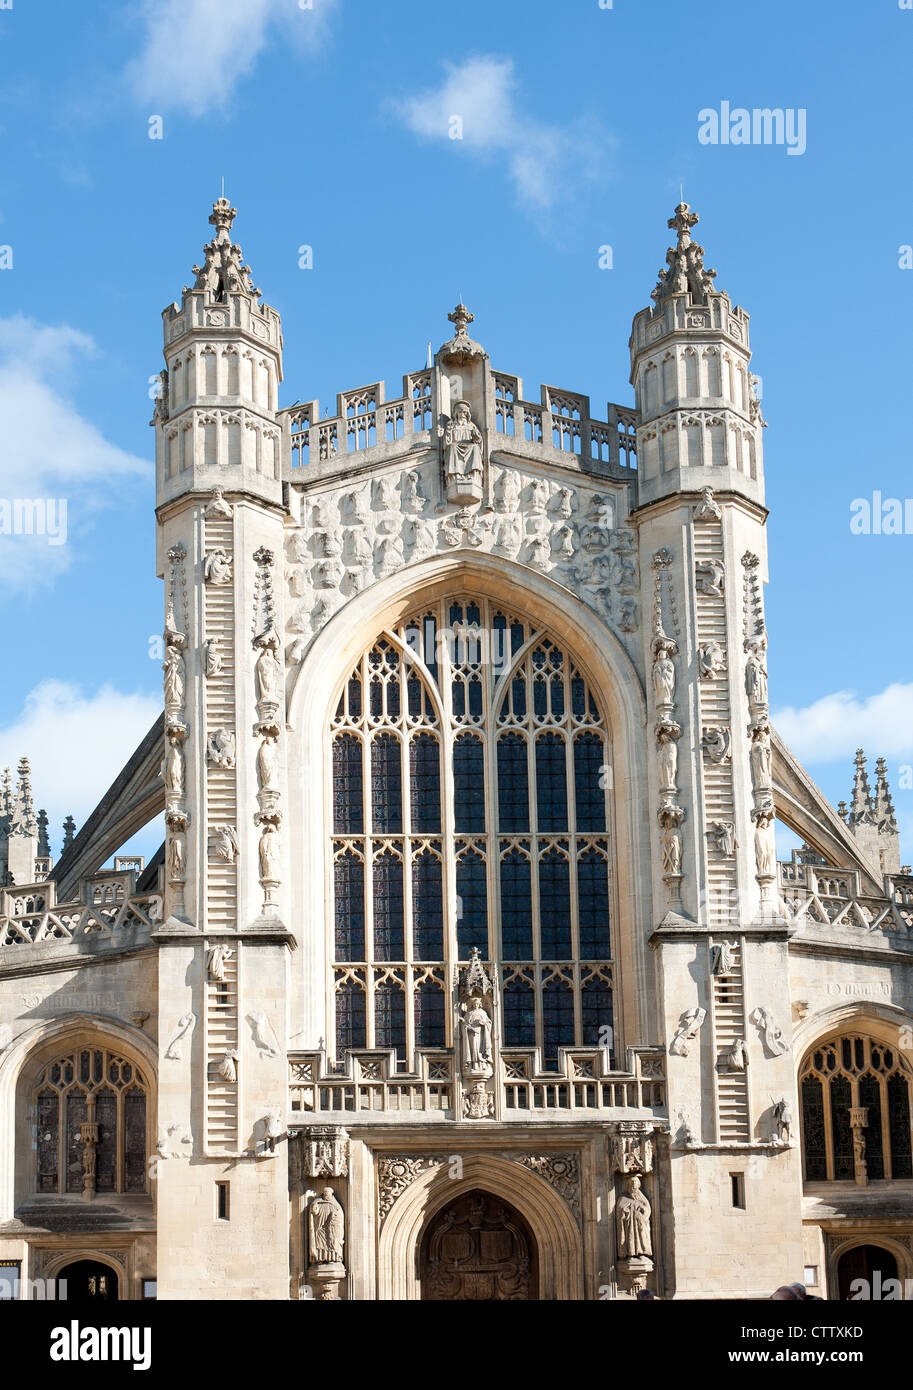 Bath Abbey in the City of Bath in Somerset, UK - Stock Image